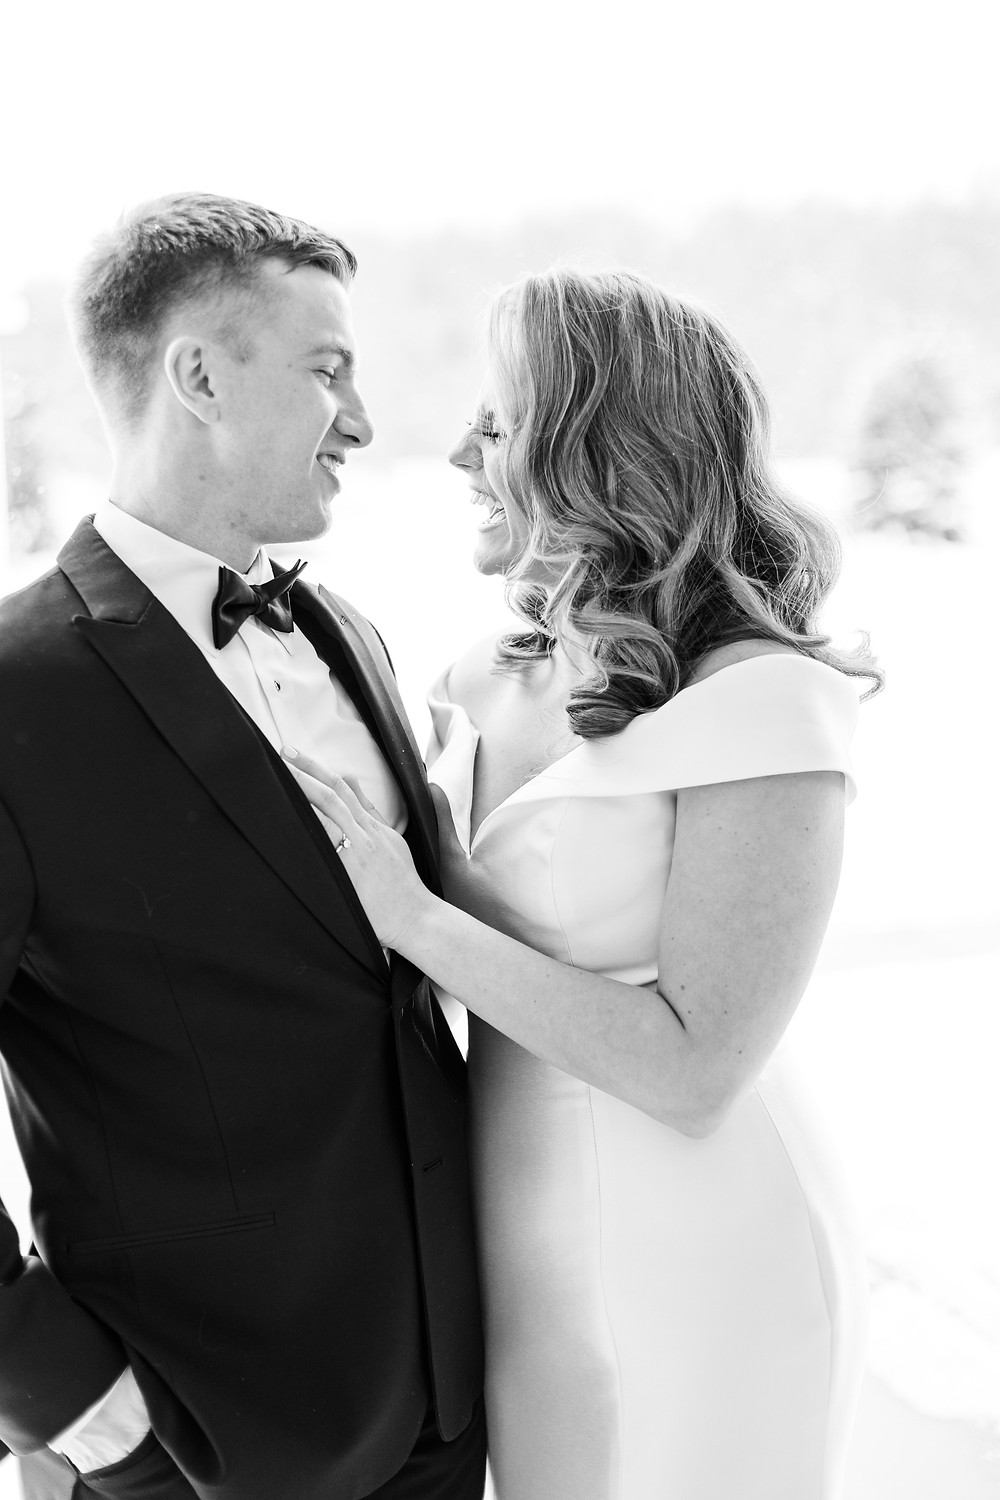 Josh and Andrea wedding photography husband and wife photographer team michigan venue Bay Pointe Woods shelbyville winter wedding bride and groom first look